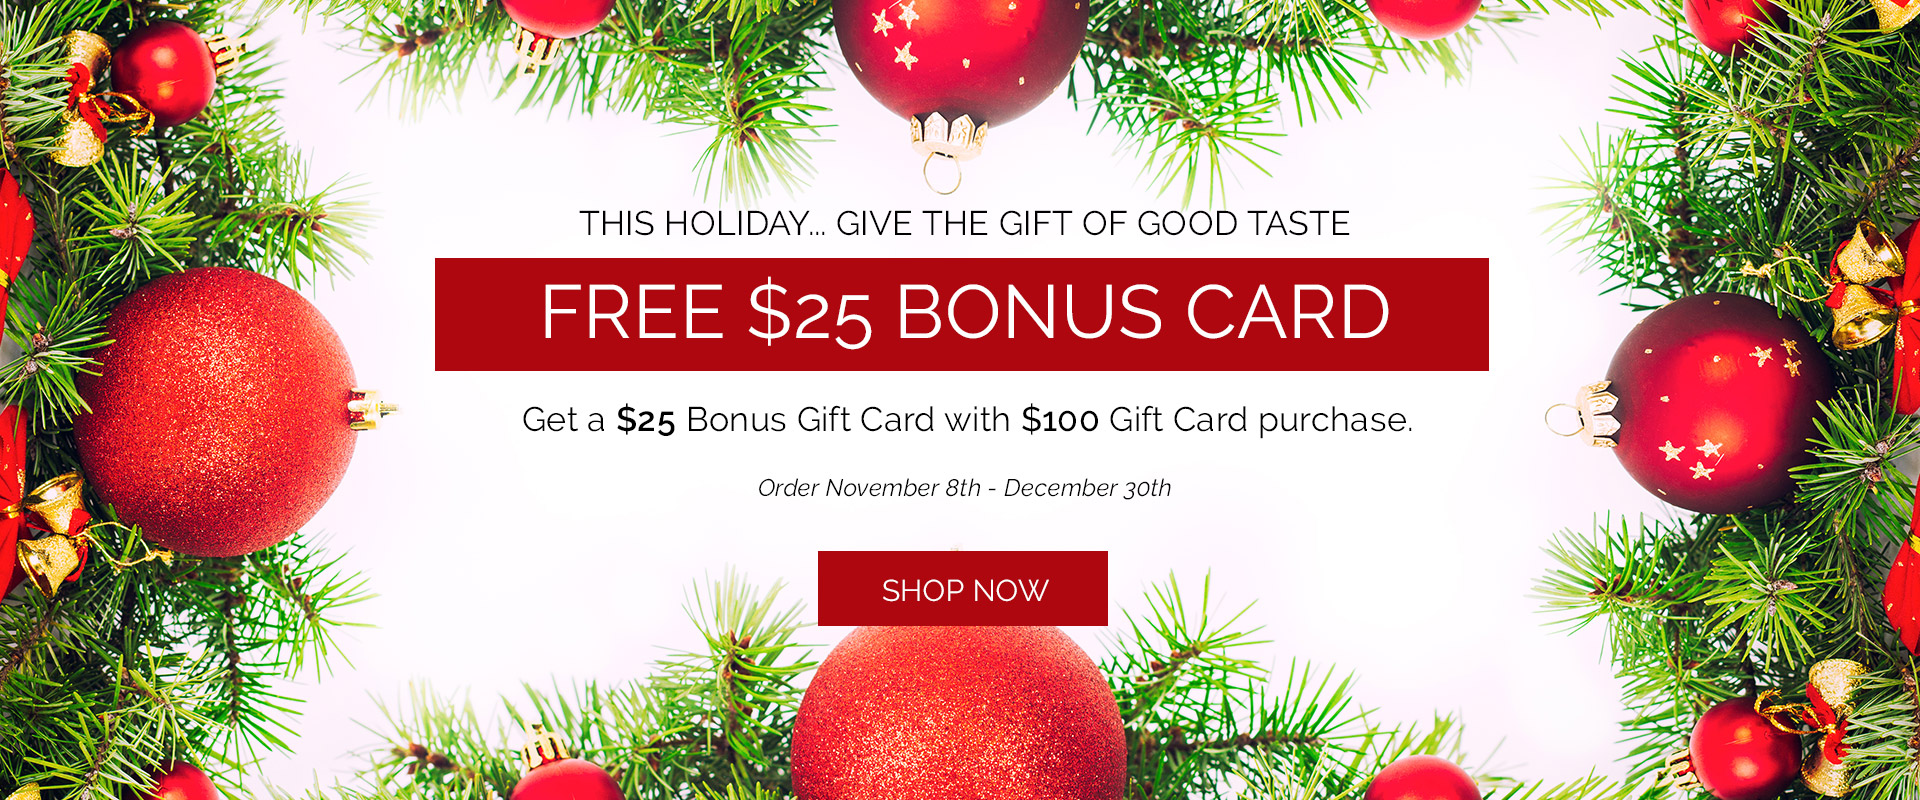 This Holiday. Get a $25 Bonus Card with $100 Gift Card Purchase.  Order November 29 - December 30 2019